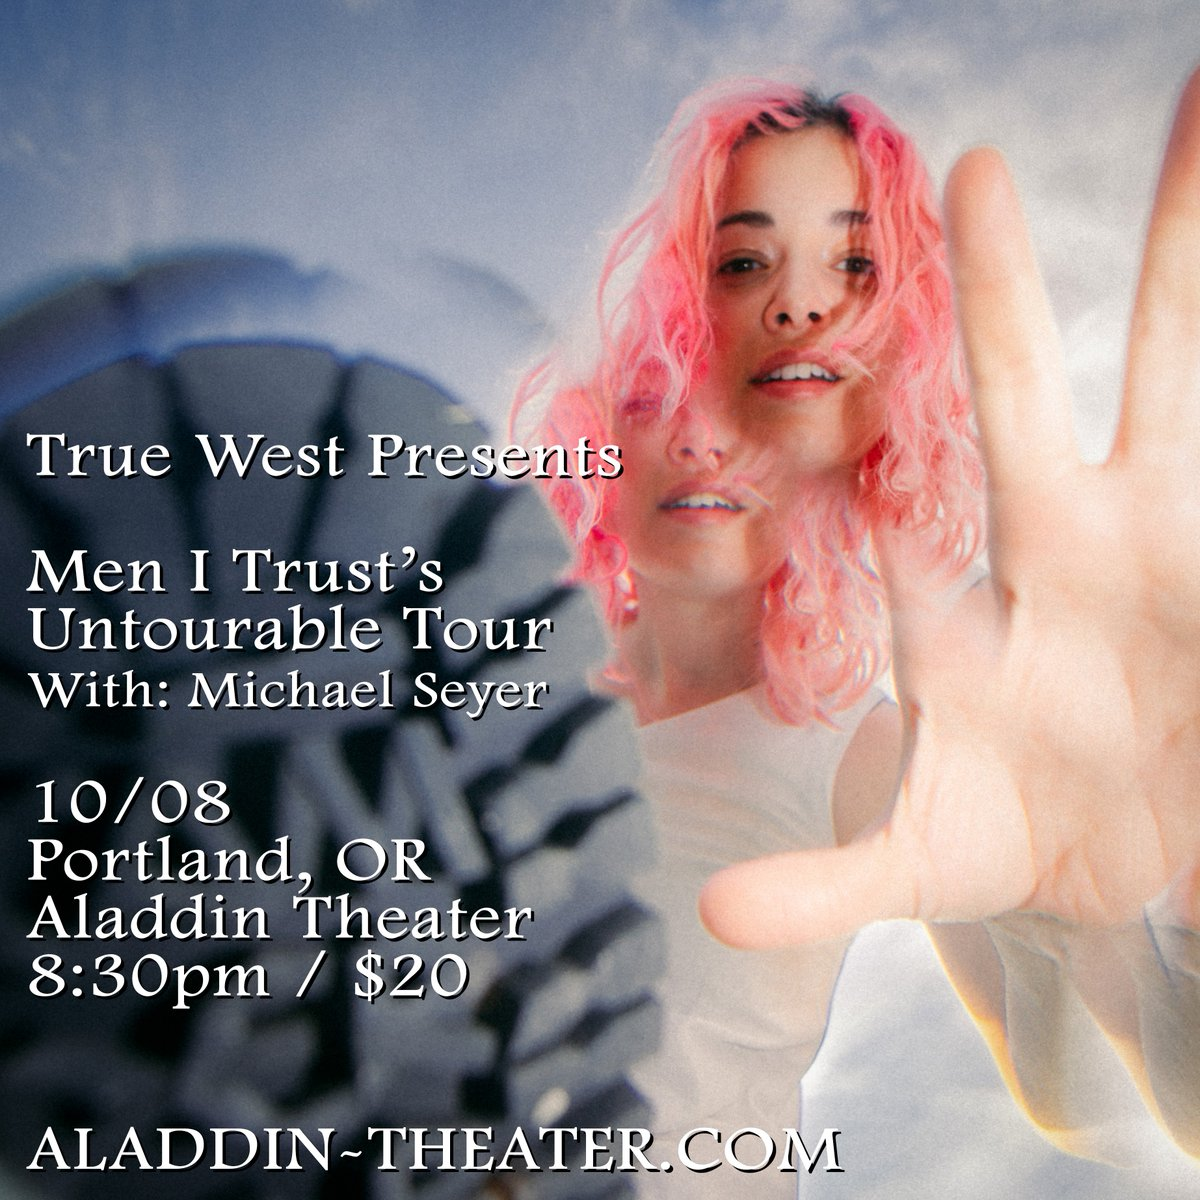 TICKETS RELEASED: A handful of tickets were just released for tomorrow night's @menitrust show at @aladdintheater! Be there to see their new release, 'The Untourable Album,' on the LIVE stage! TICKETS 🎟️ bit.ly/MenITrustTW2021